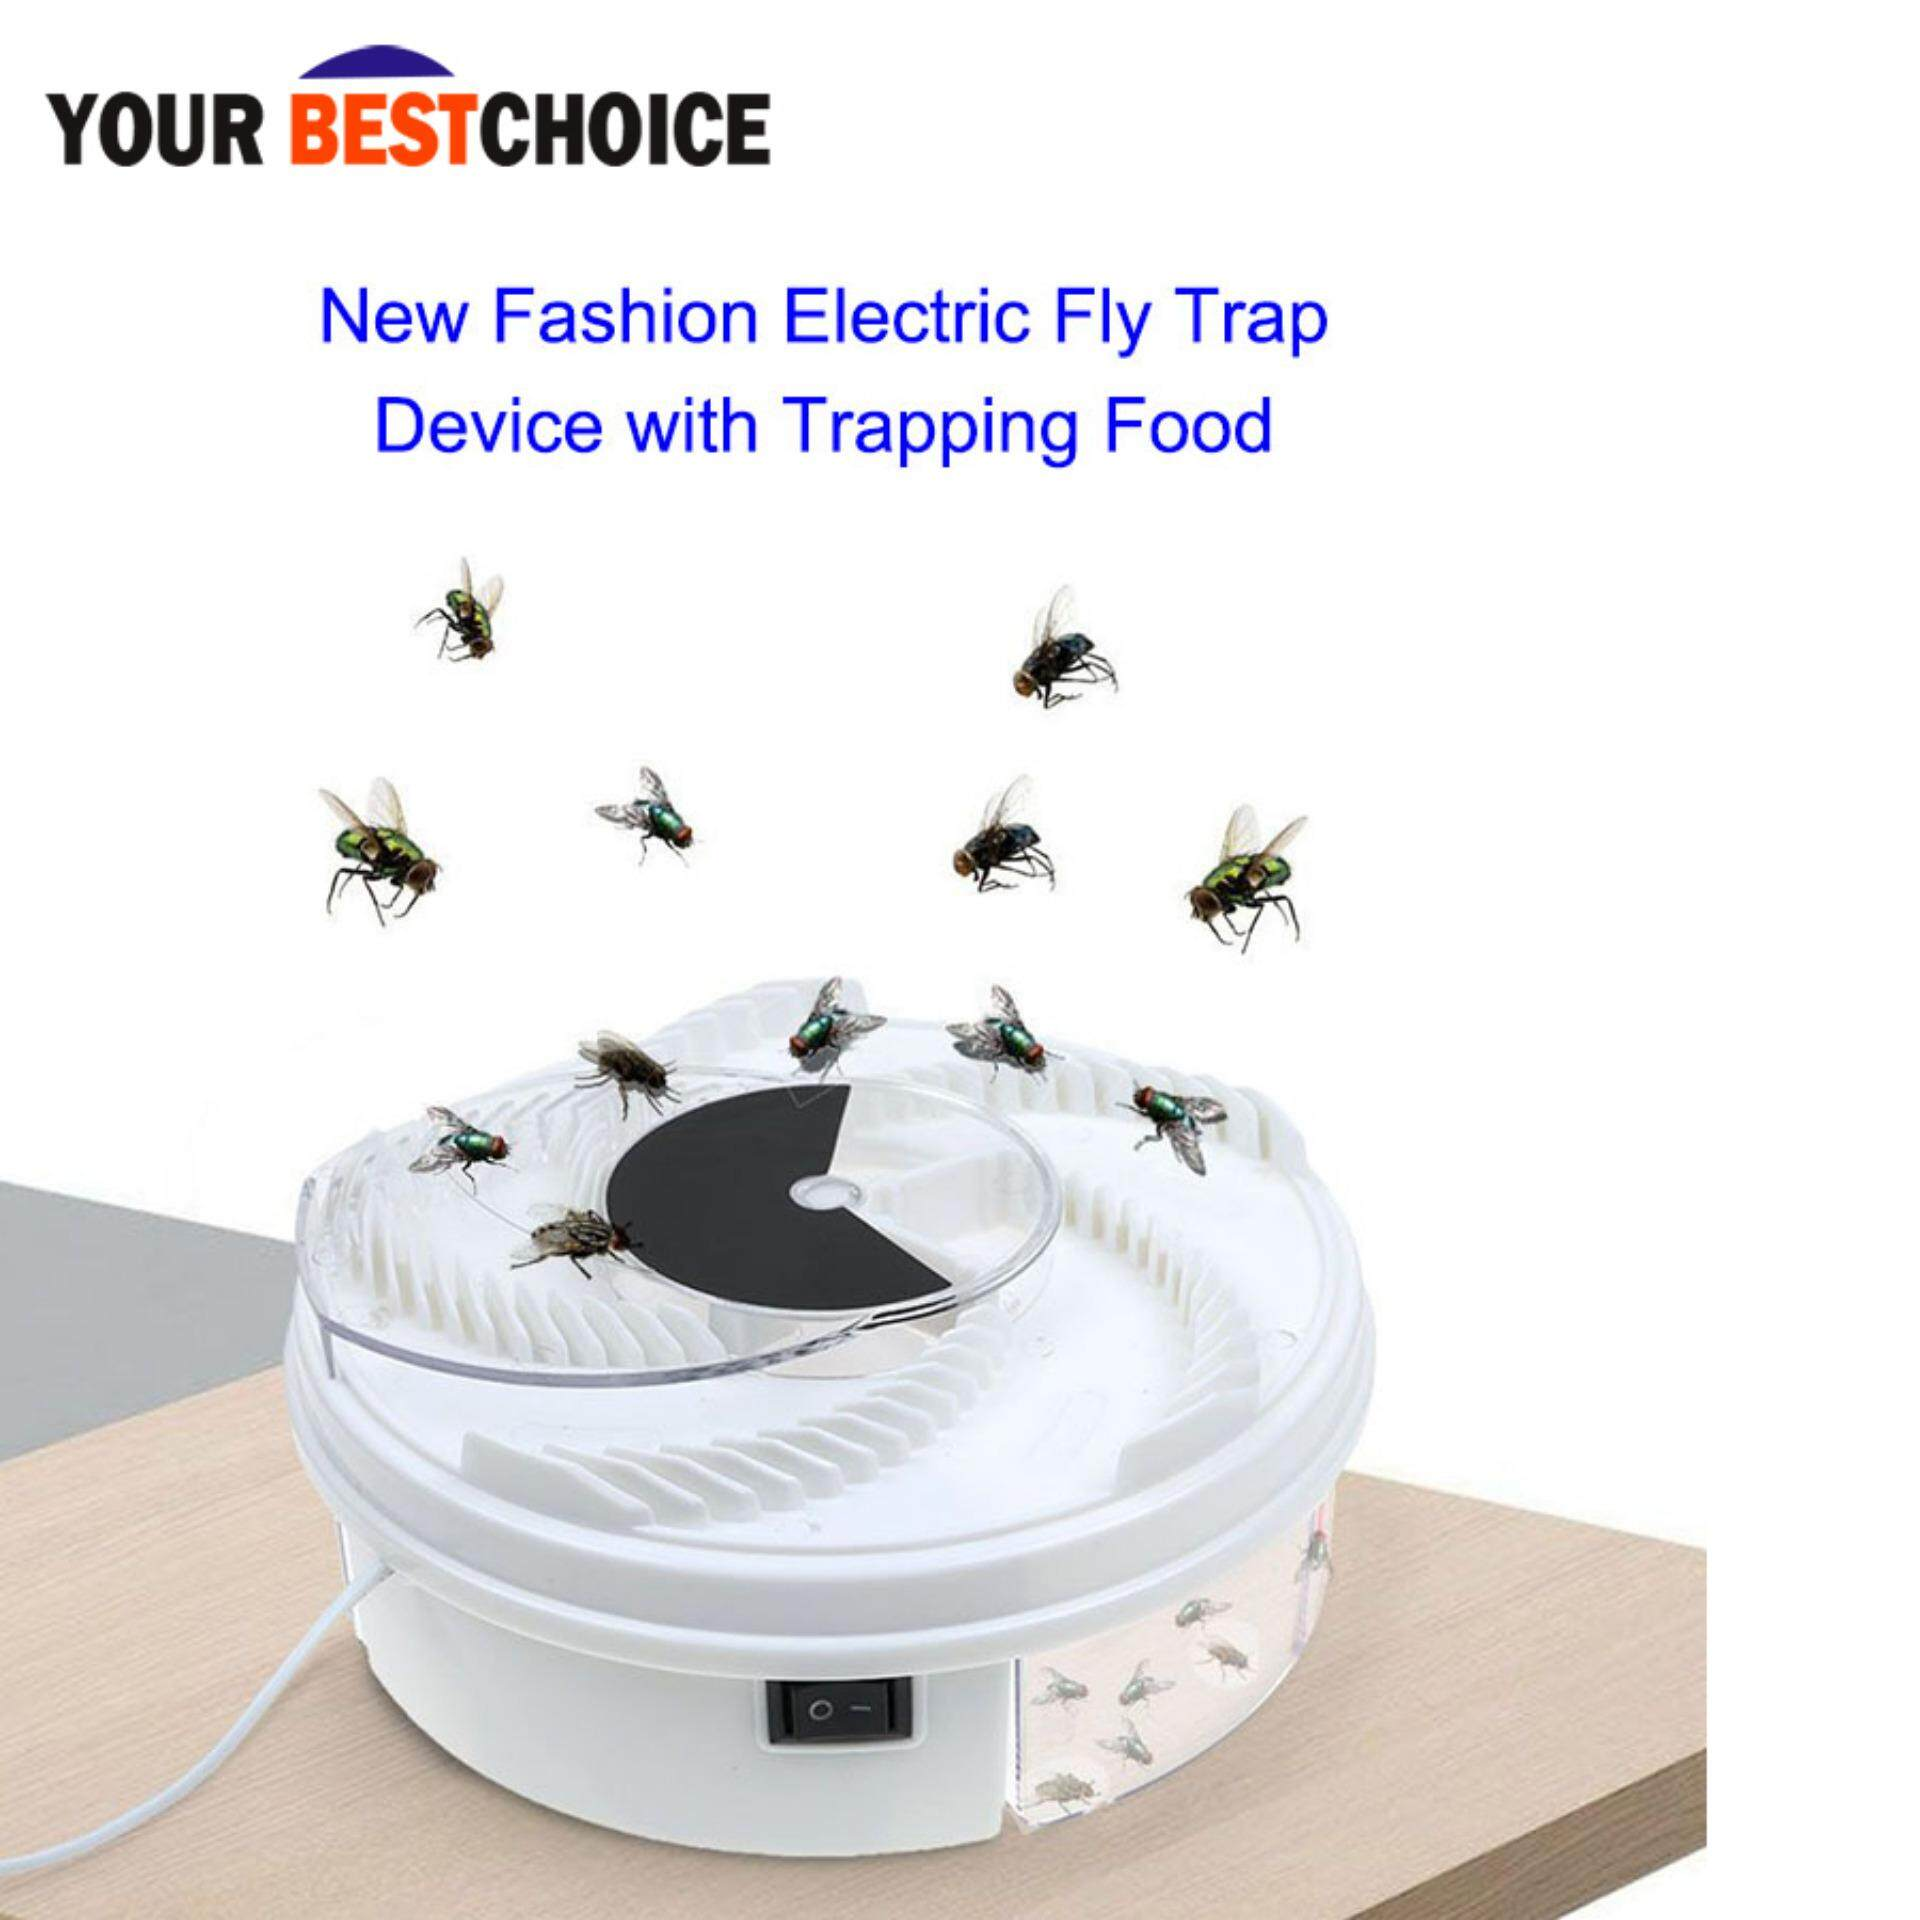 Ybc Fly Trap Device Autumatic Electric With Trapping Food+Usb Cable+Brush